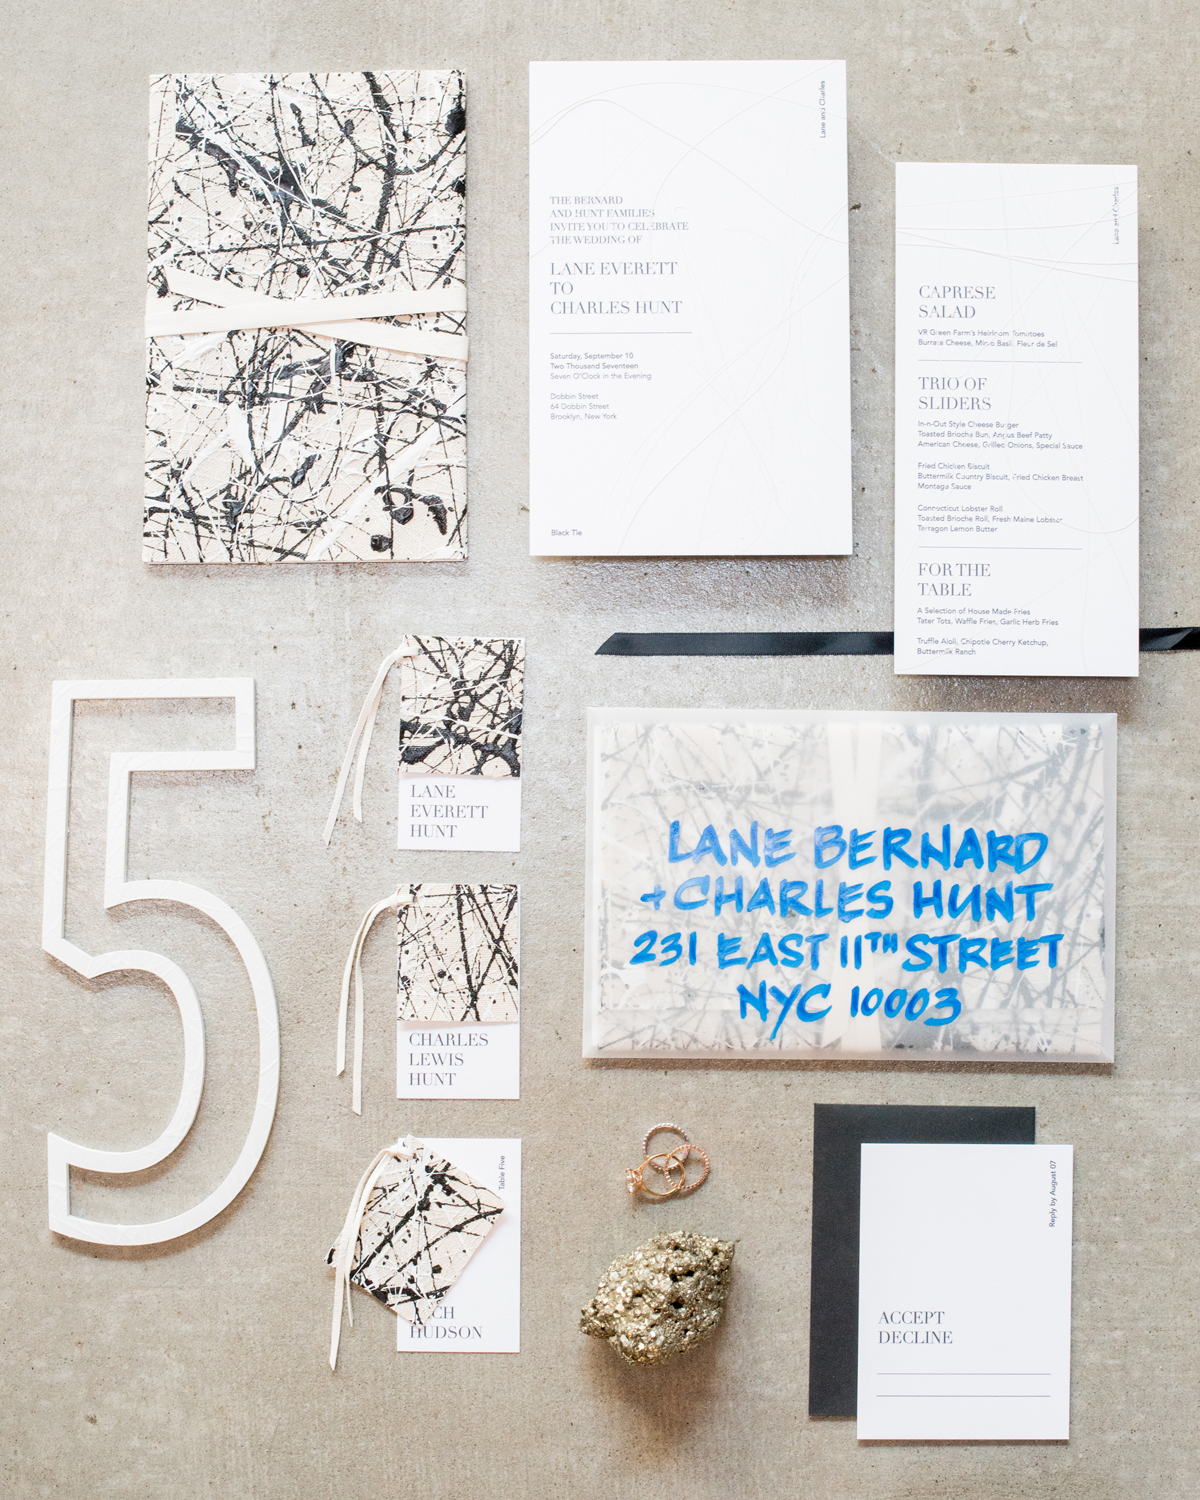 art-inspired wedding ideas jackson pollock stationary suite